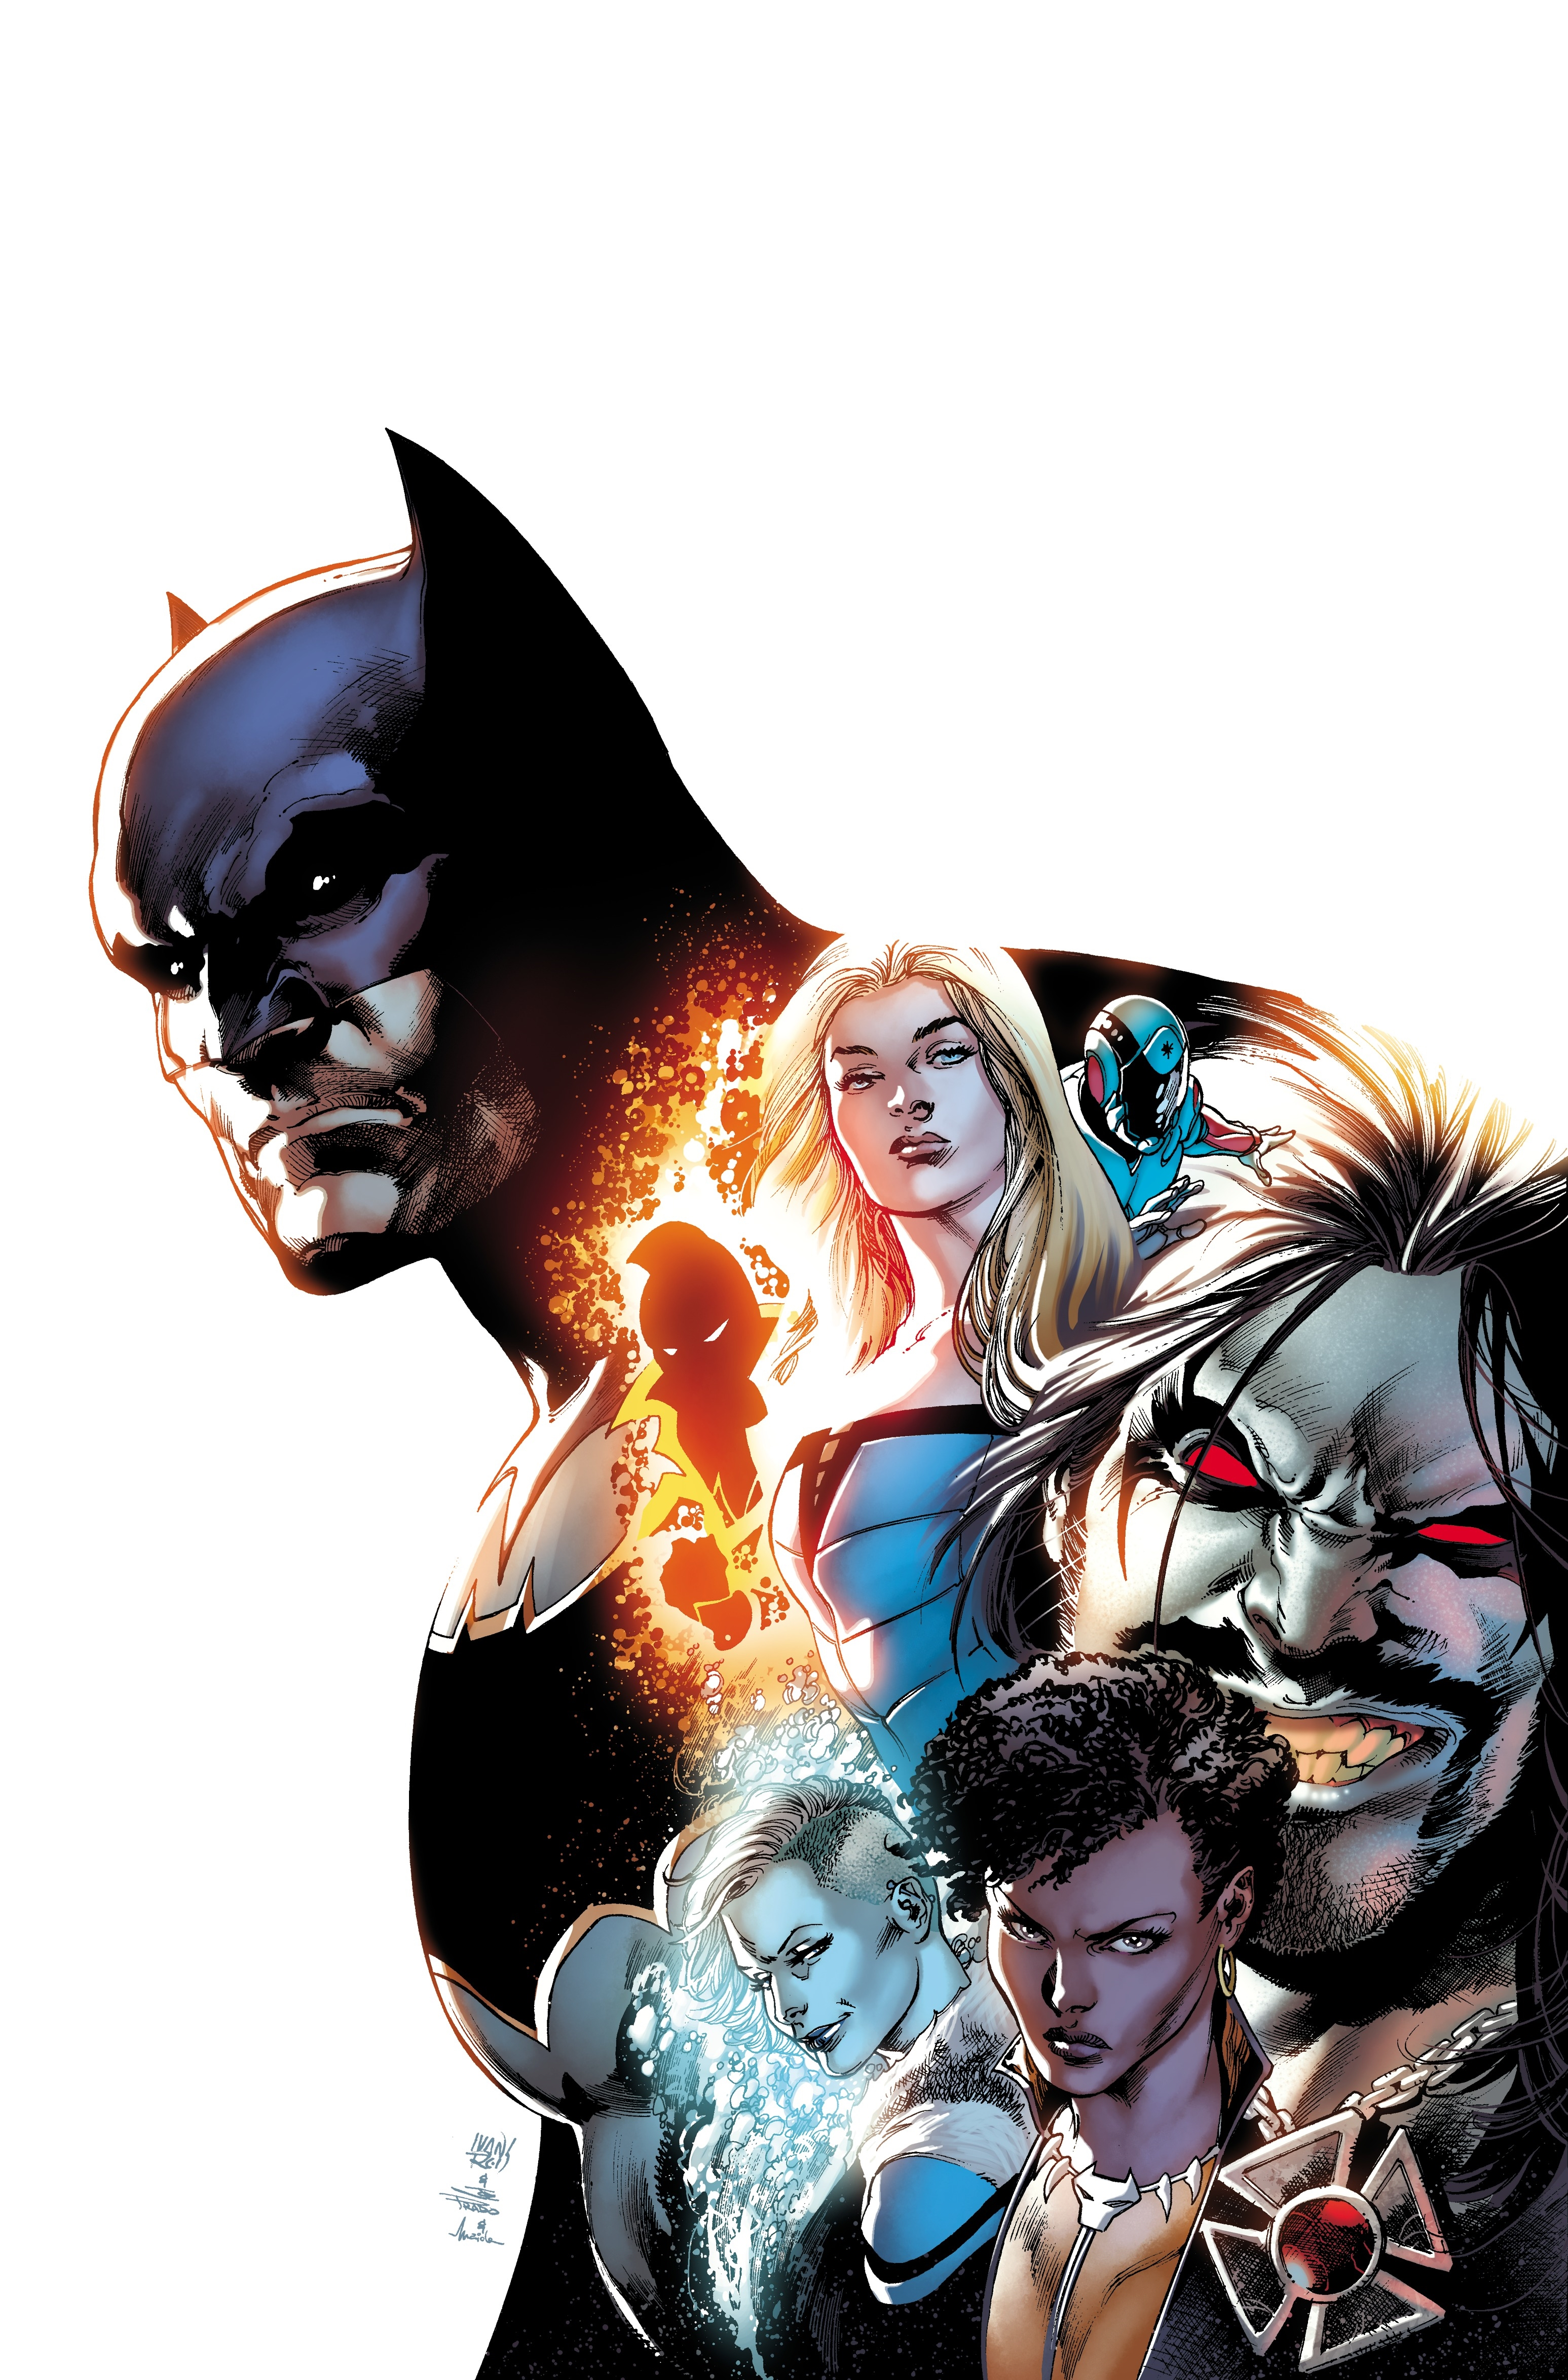 Justice League Of America The Rebirth Deluxe Edition Book 1 (Rebirth)Justice League of America - Rebirth